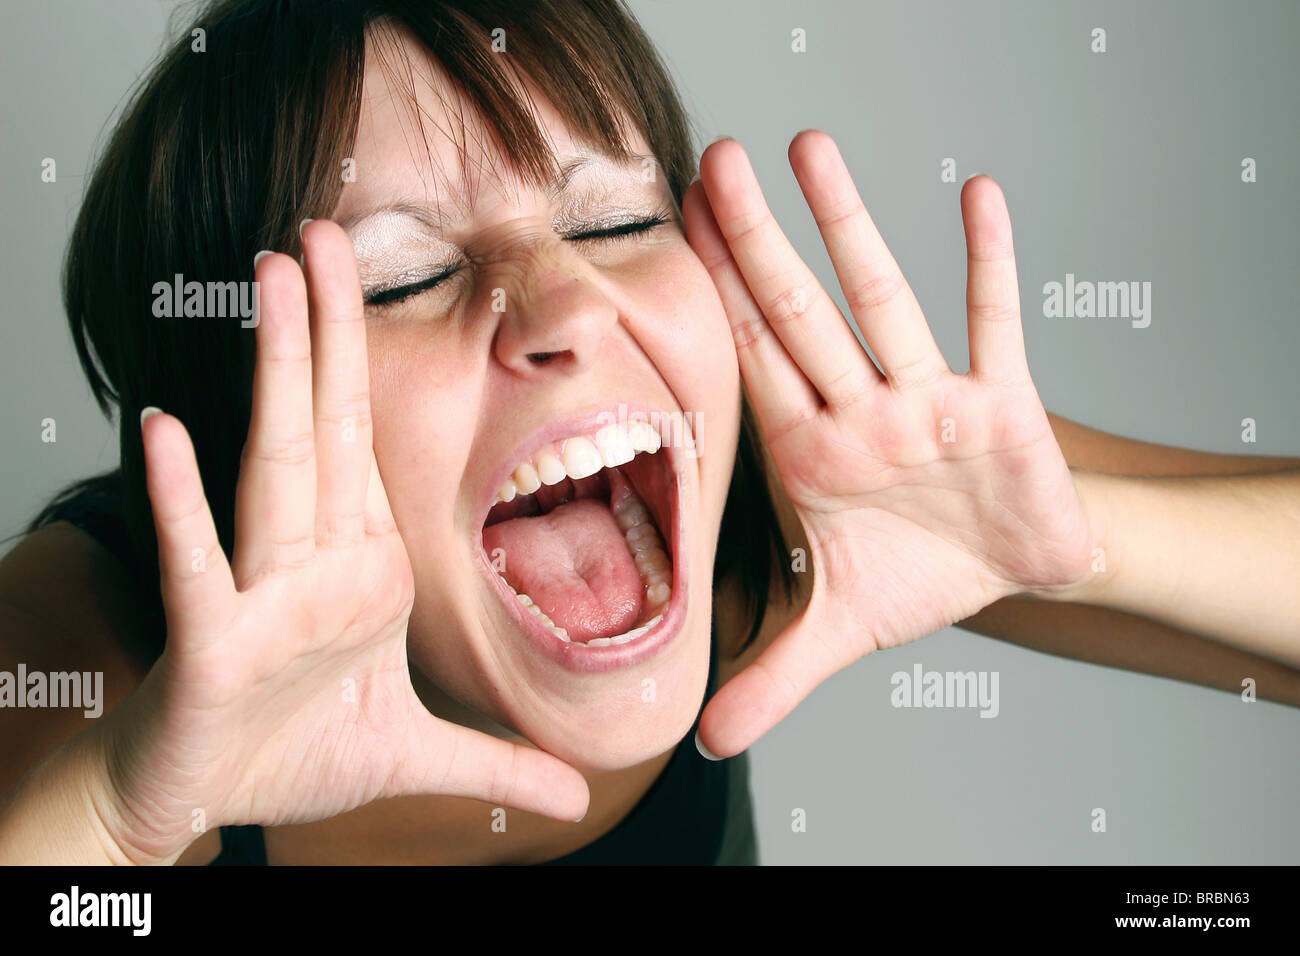 A screaming woman - Stock Image